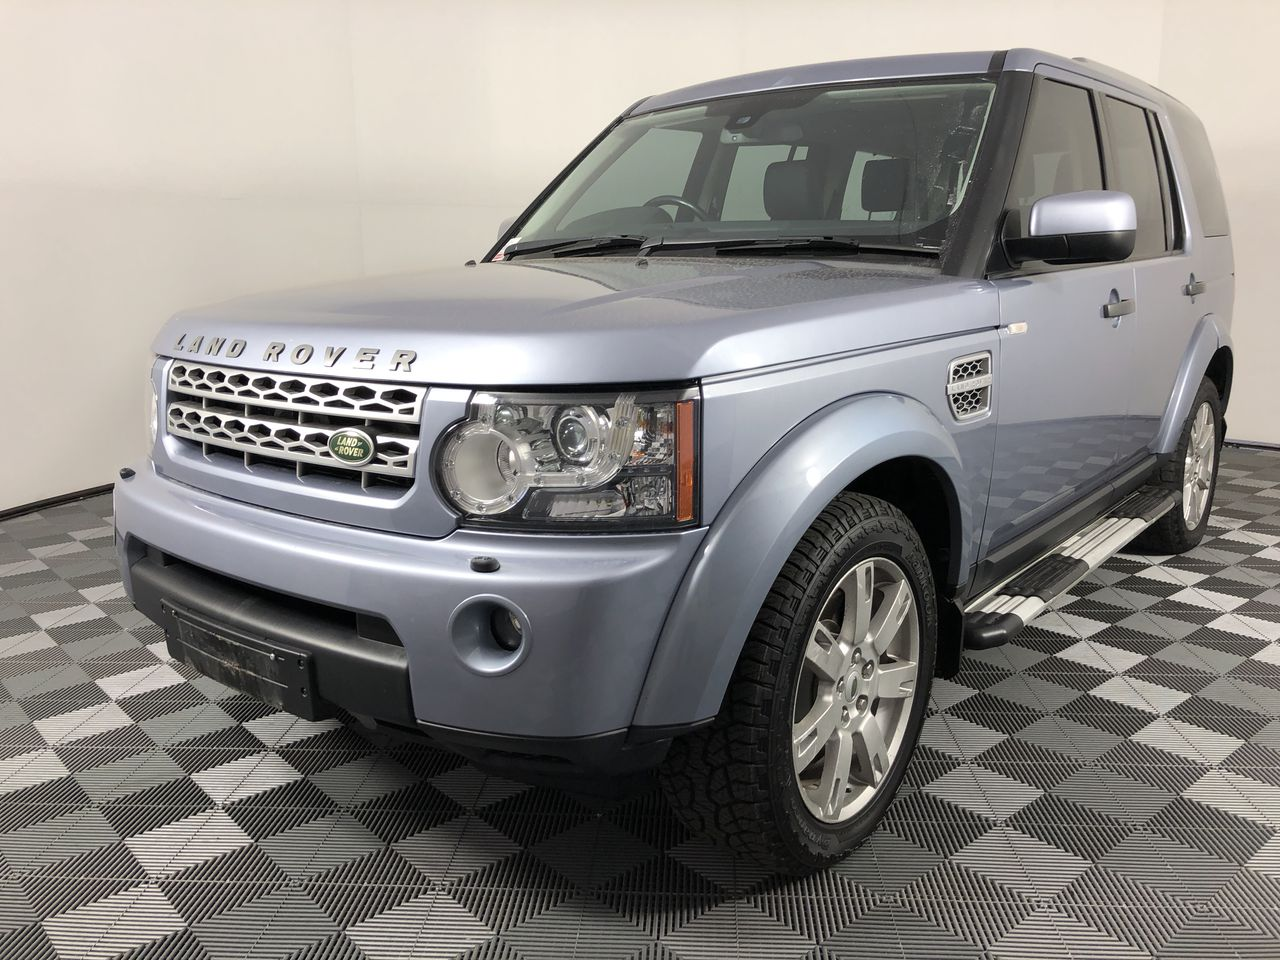 2009 Land Rover Discovery 3.0 TDV6 SE Series 4 T/Diesel Auto 7 Seat Wagon